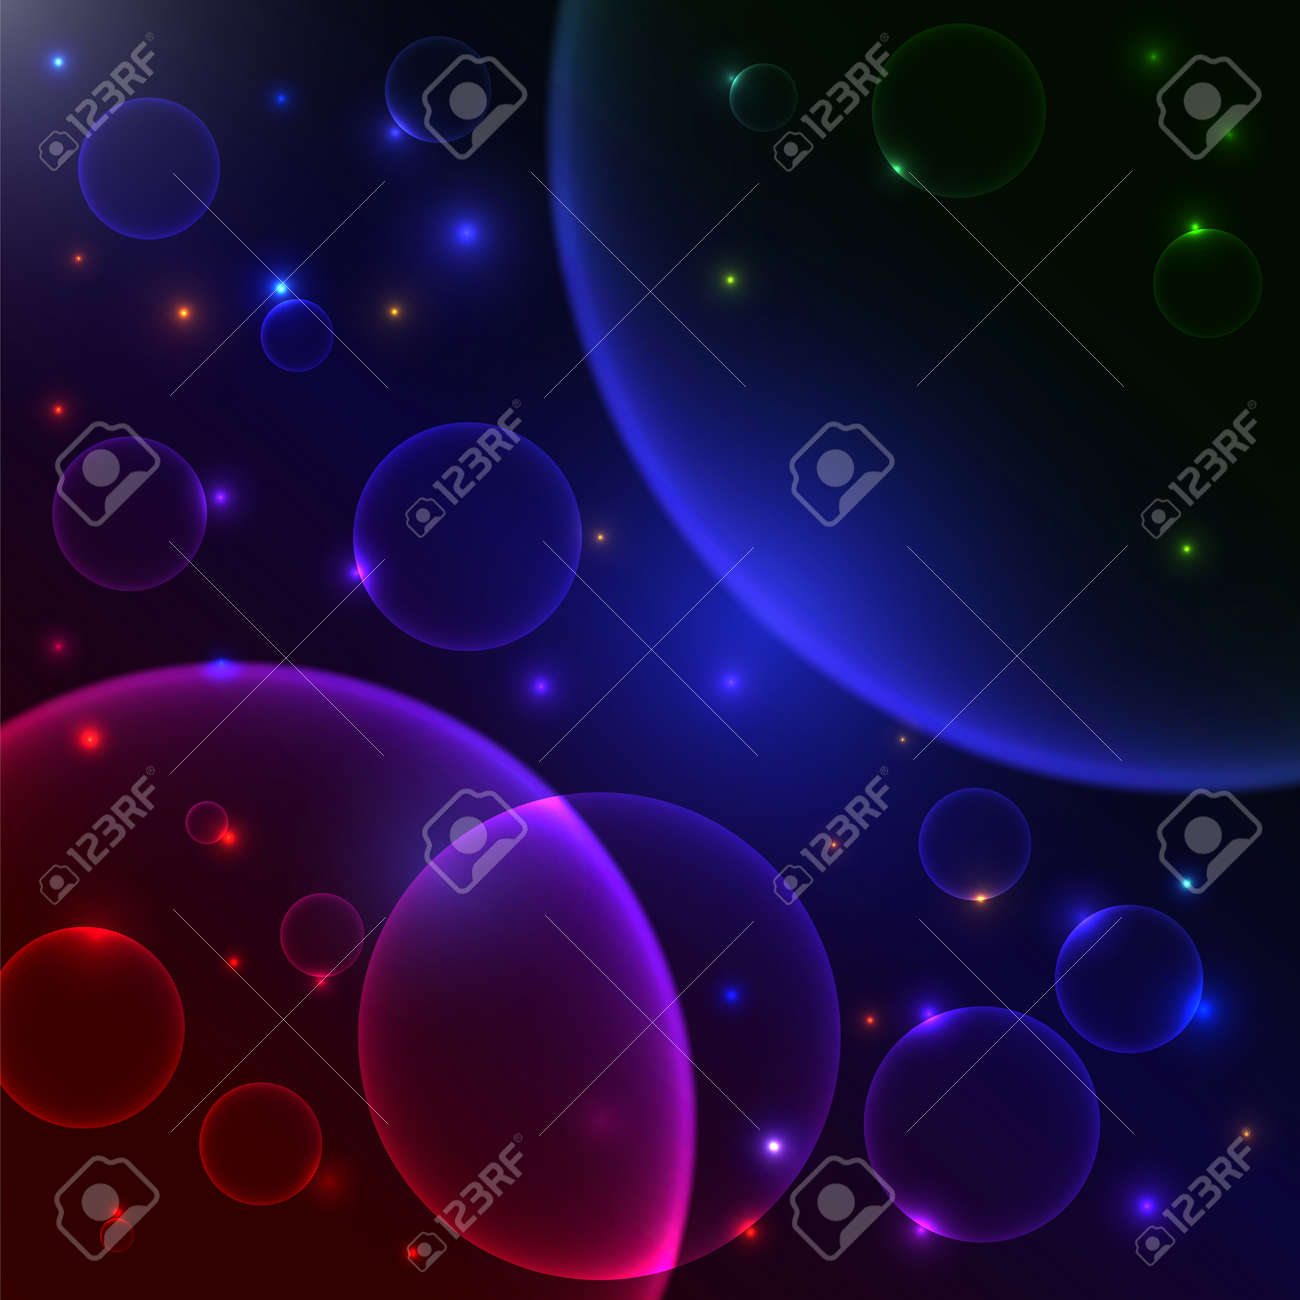 Abstract space background Vector illustration Stock Vector - 24507034